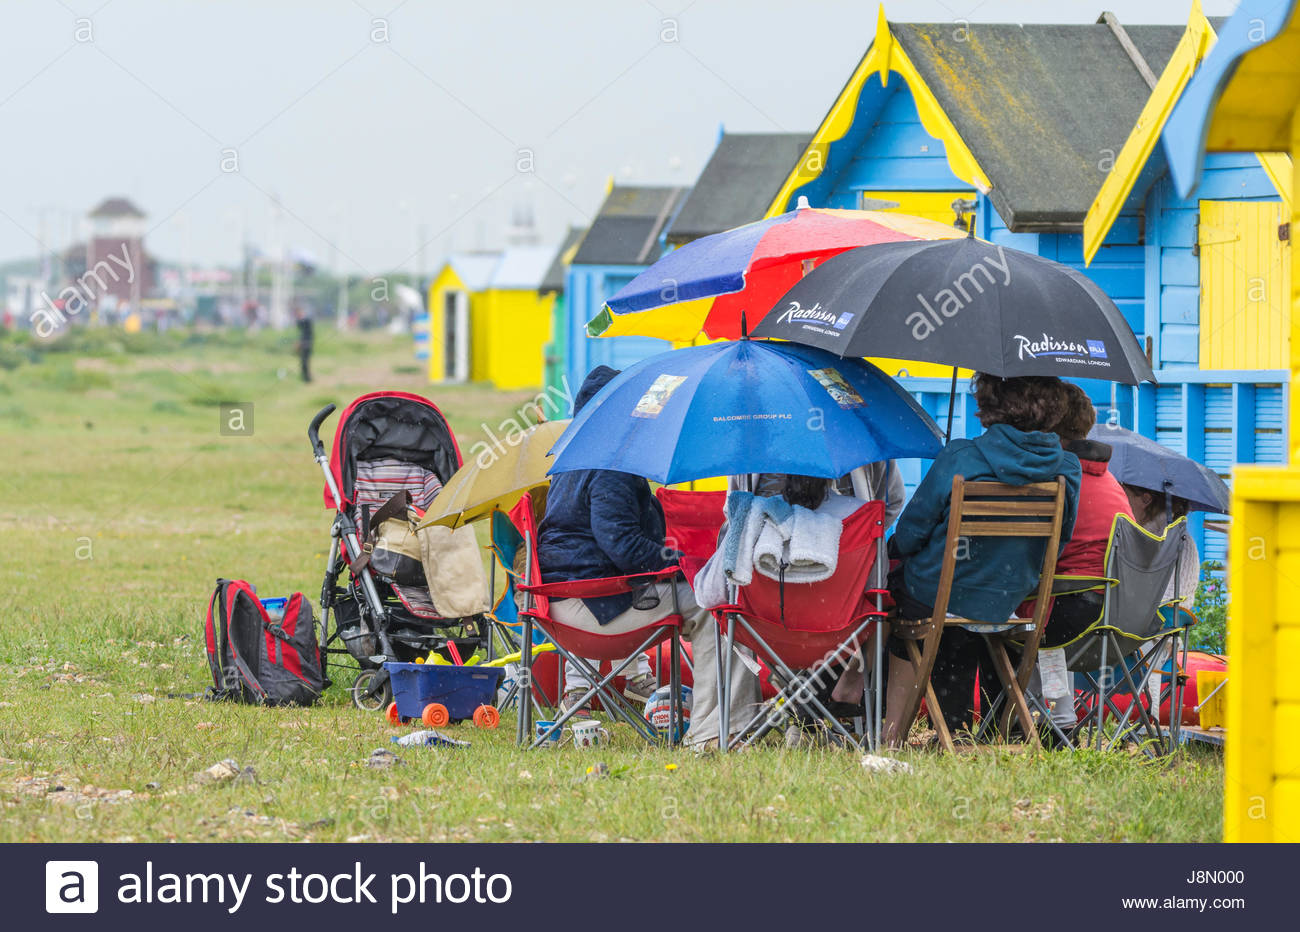 People take shelter under umbrellas in wet weather on a miserable Bank Holiday Monday on 29th May 2017 in Littlehampton, - Stock Image